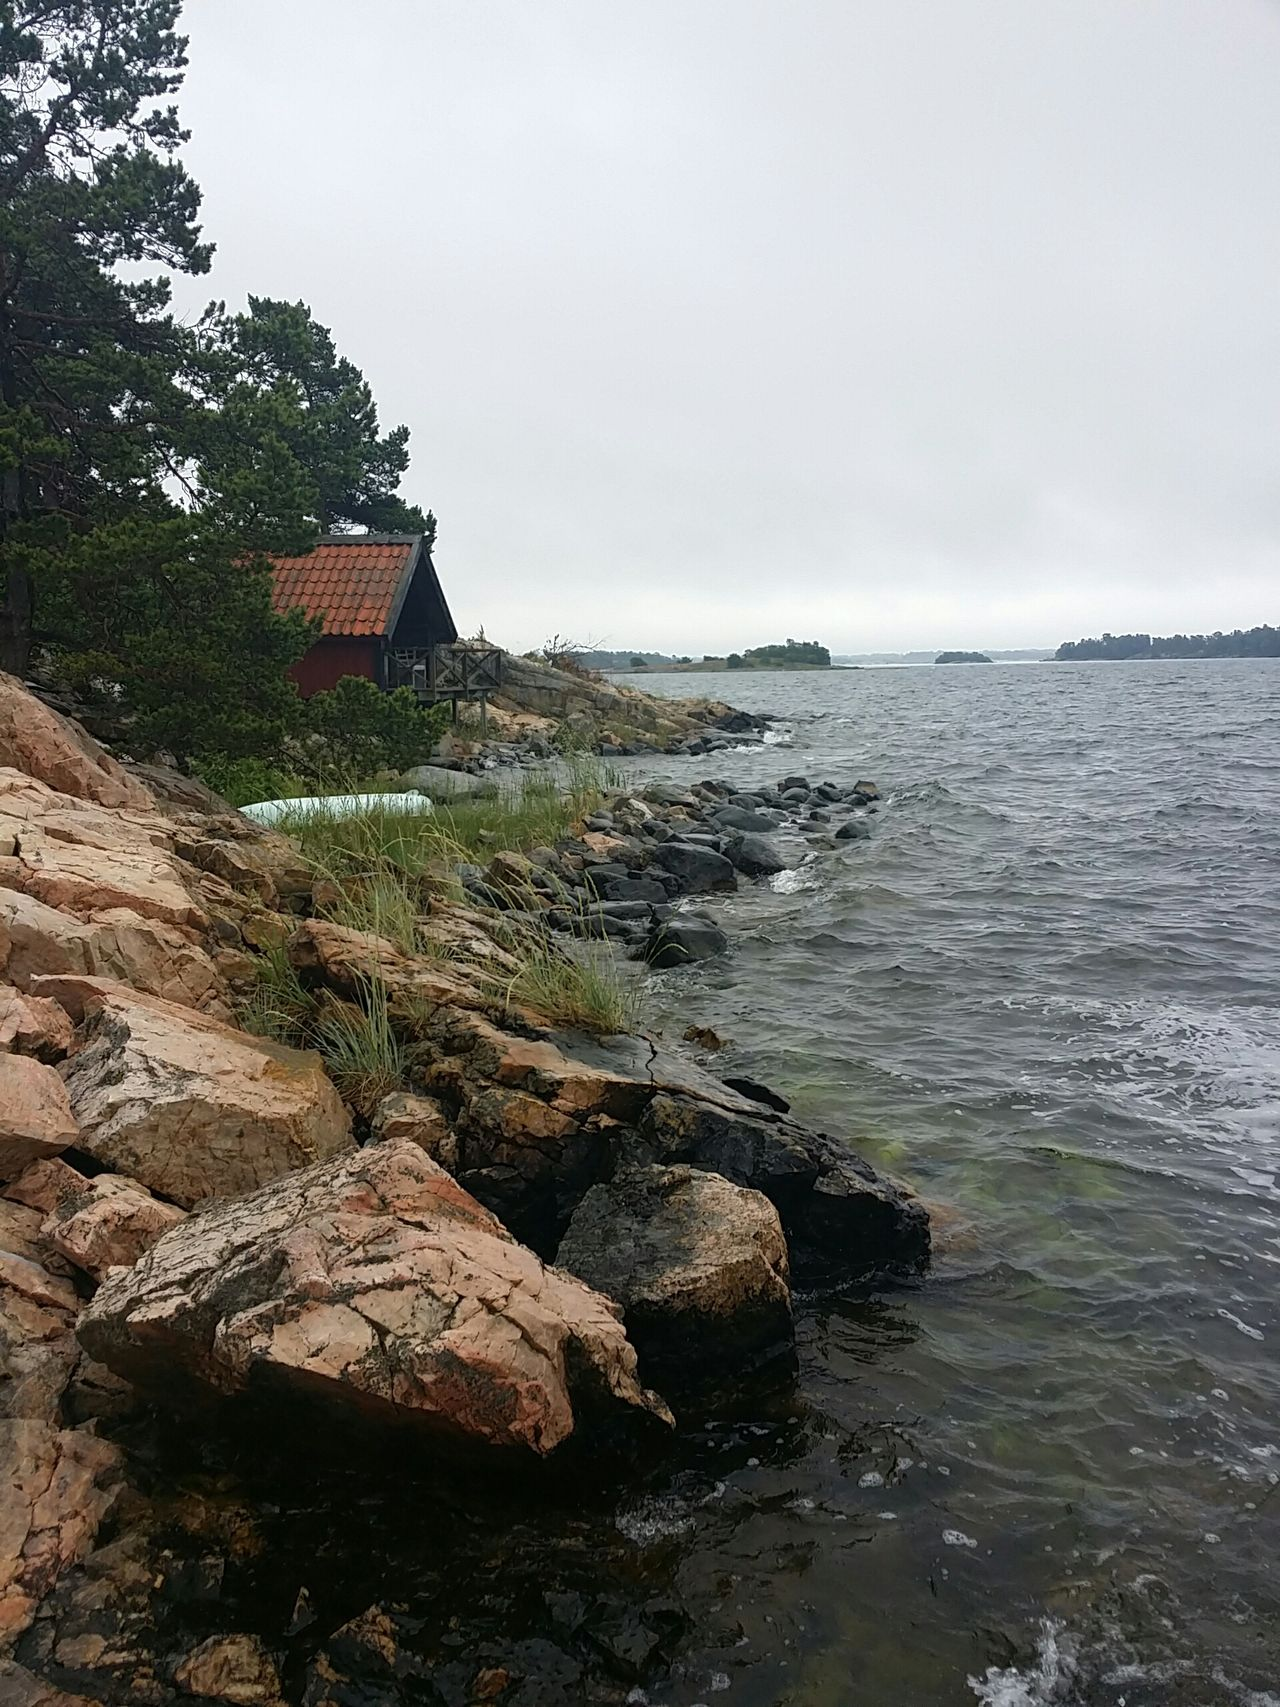 Rainy day but it dosent matter. Taking Photos Check This Out Enjoying Life No Edit/no Filter Mobilephotography Stockholmsskärgård Stockholm Archipelago Enjoying Nature Enjoying Life Relaxing